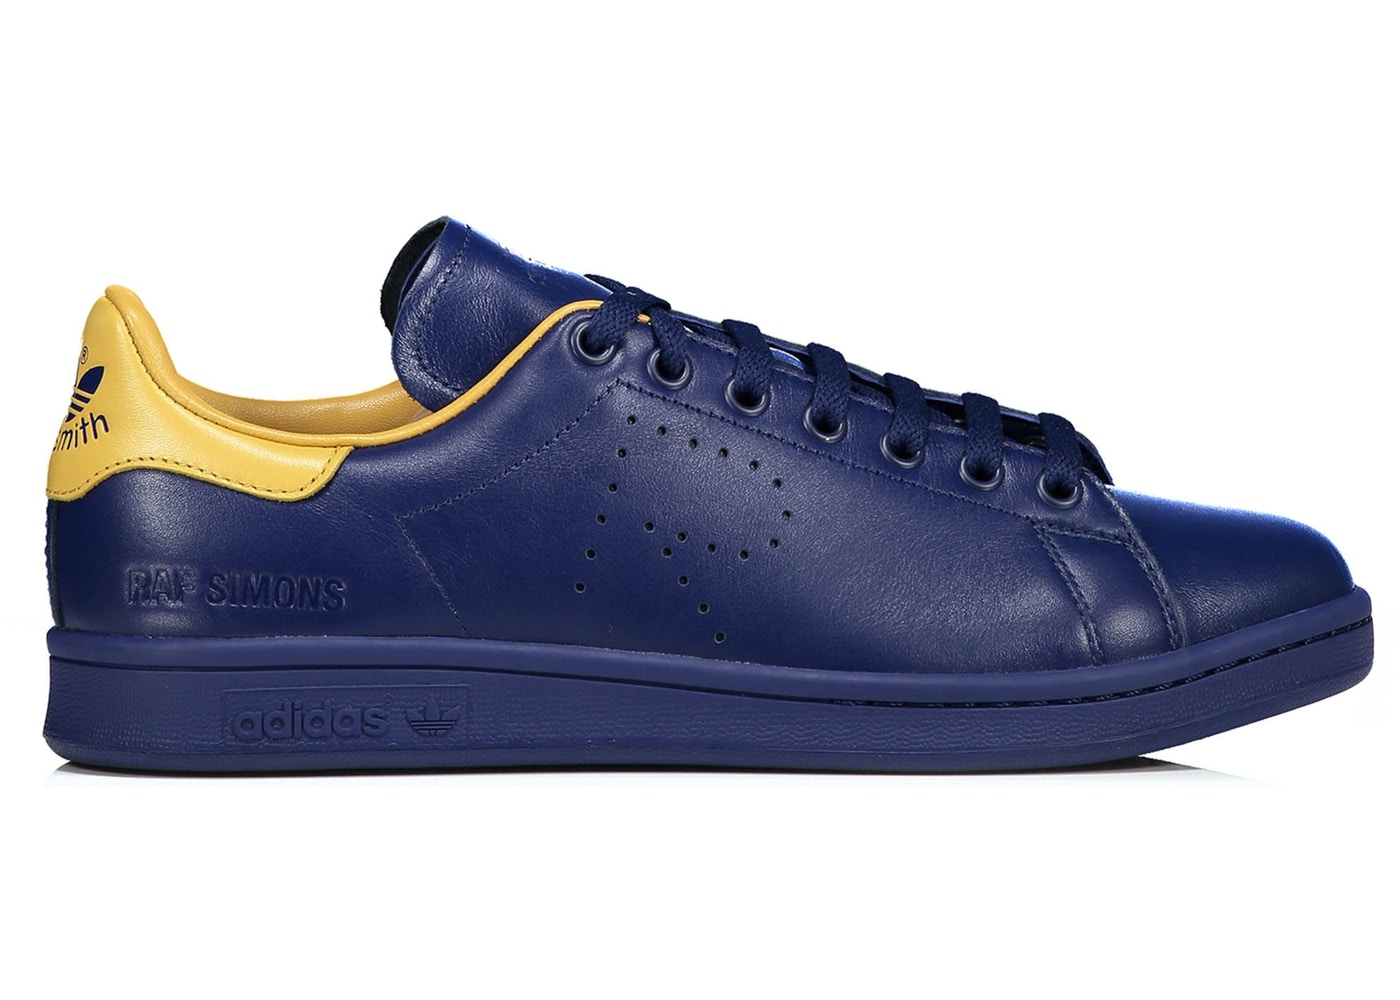 アディダス ADIDAS ナイト スニーカー 【 STAN SMITH RAF SIMONS NIGHT SKY HONEY GOLD 】 メンズ